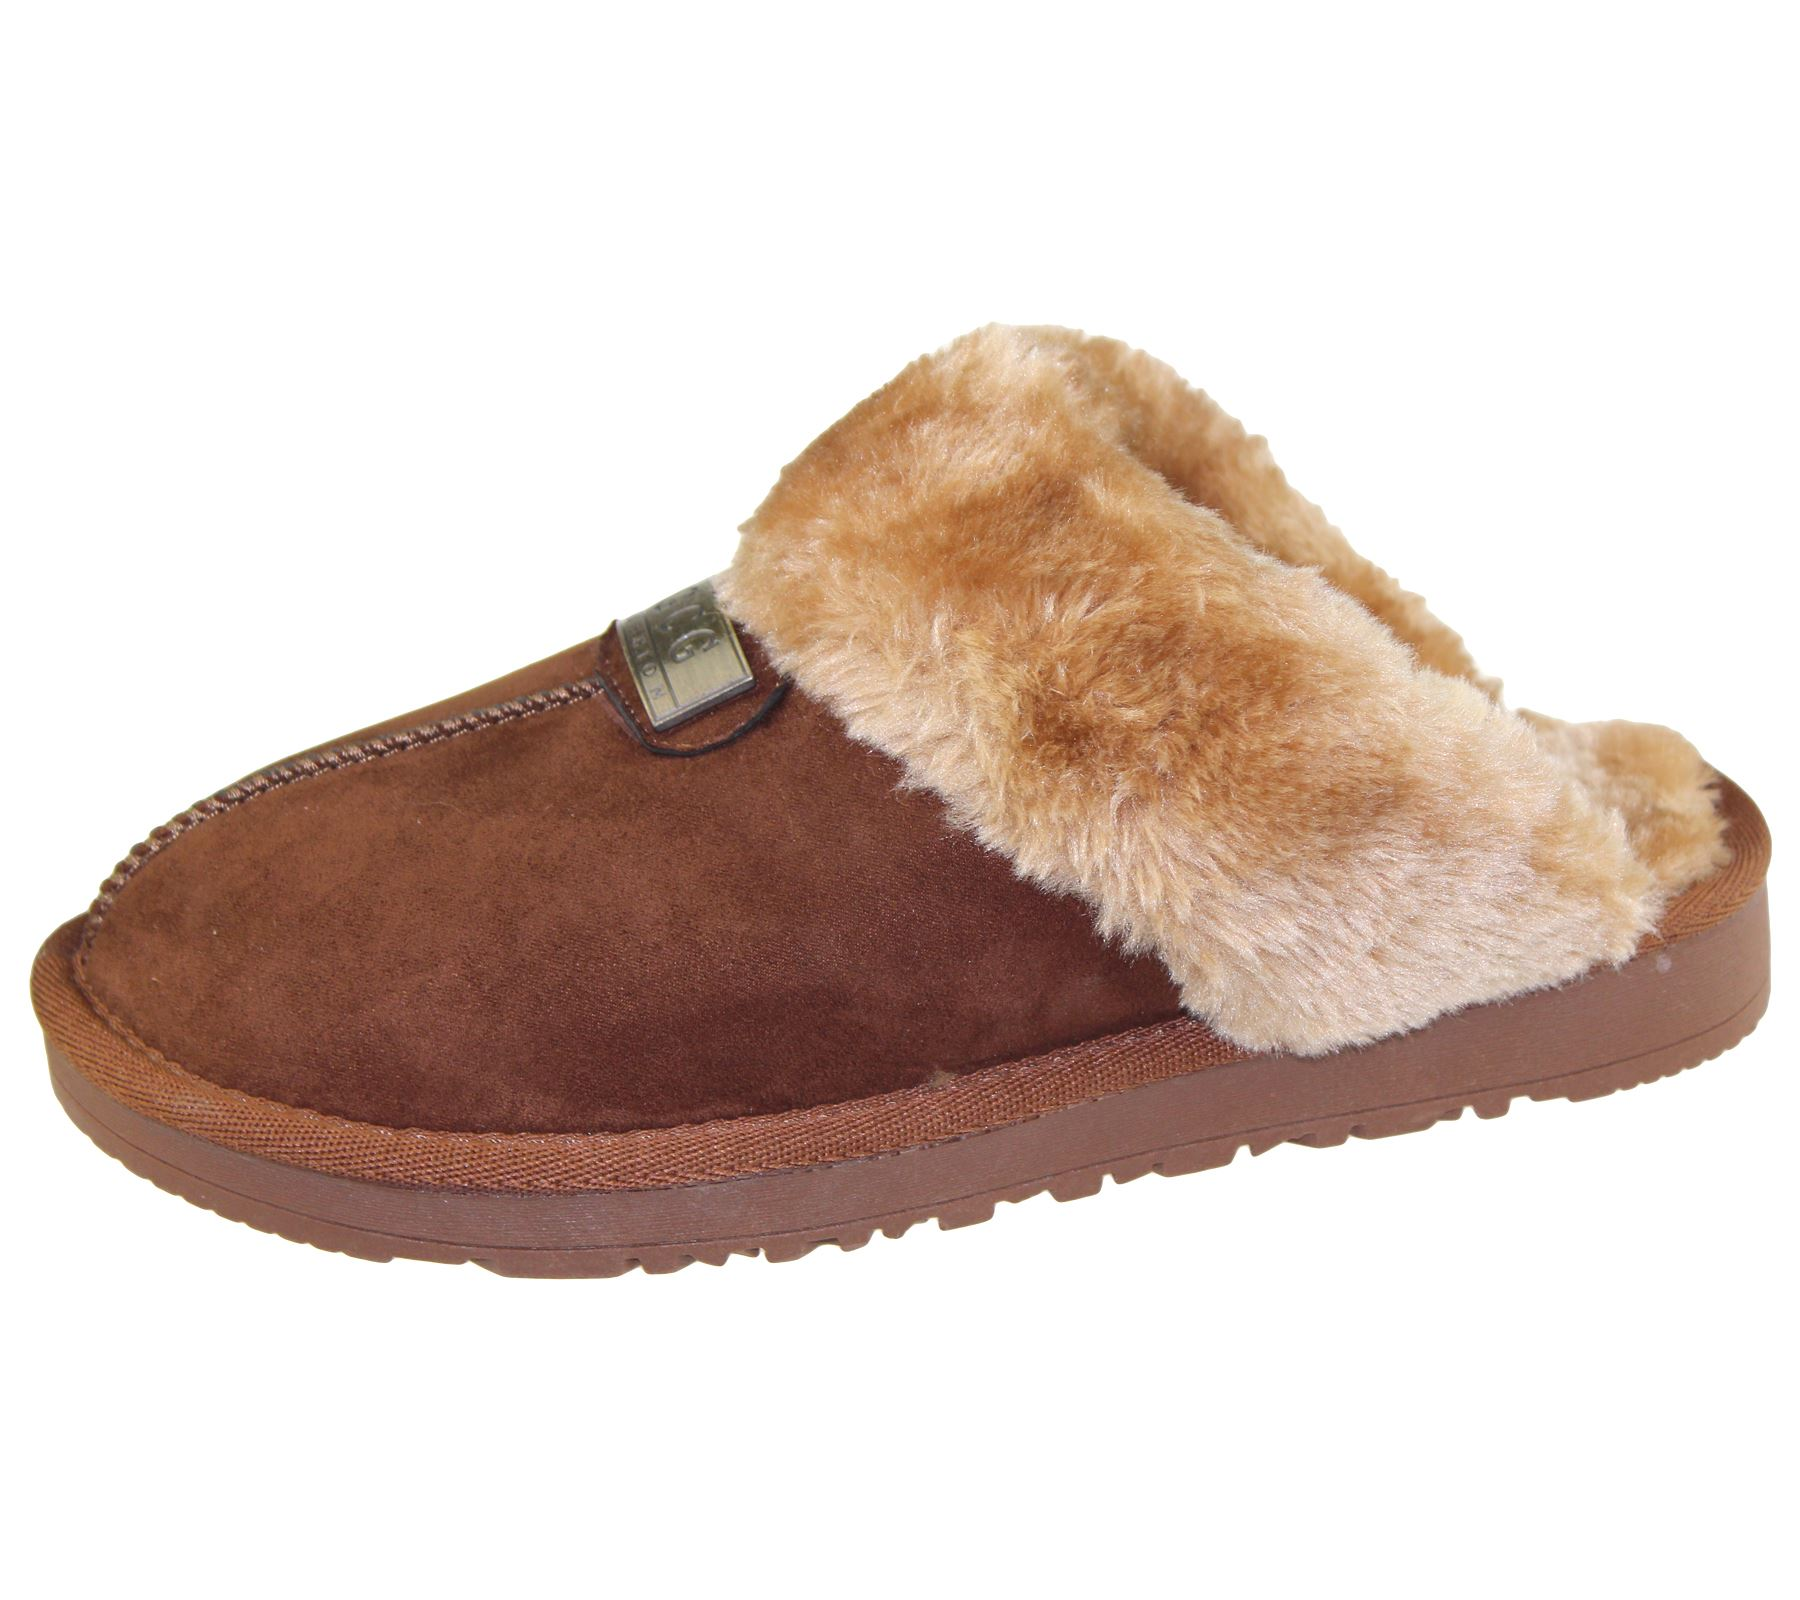 f1d53b1fdc Womens Fur Lined Slippers Ladies Mules Non Slip Rubber Sole Shoes | eBay